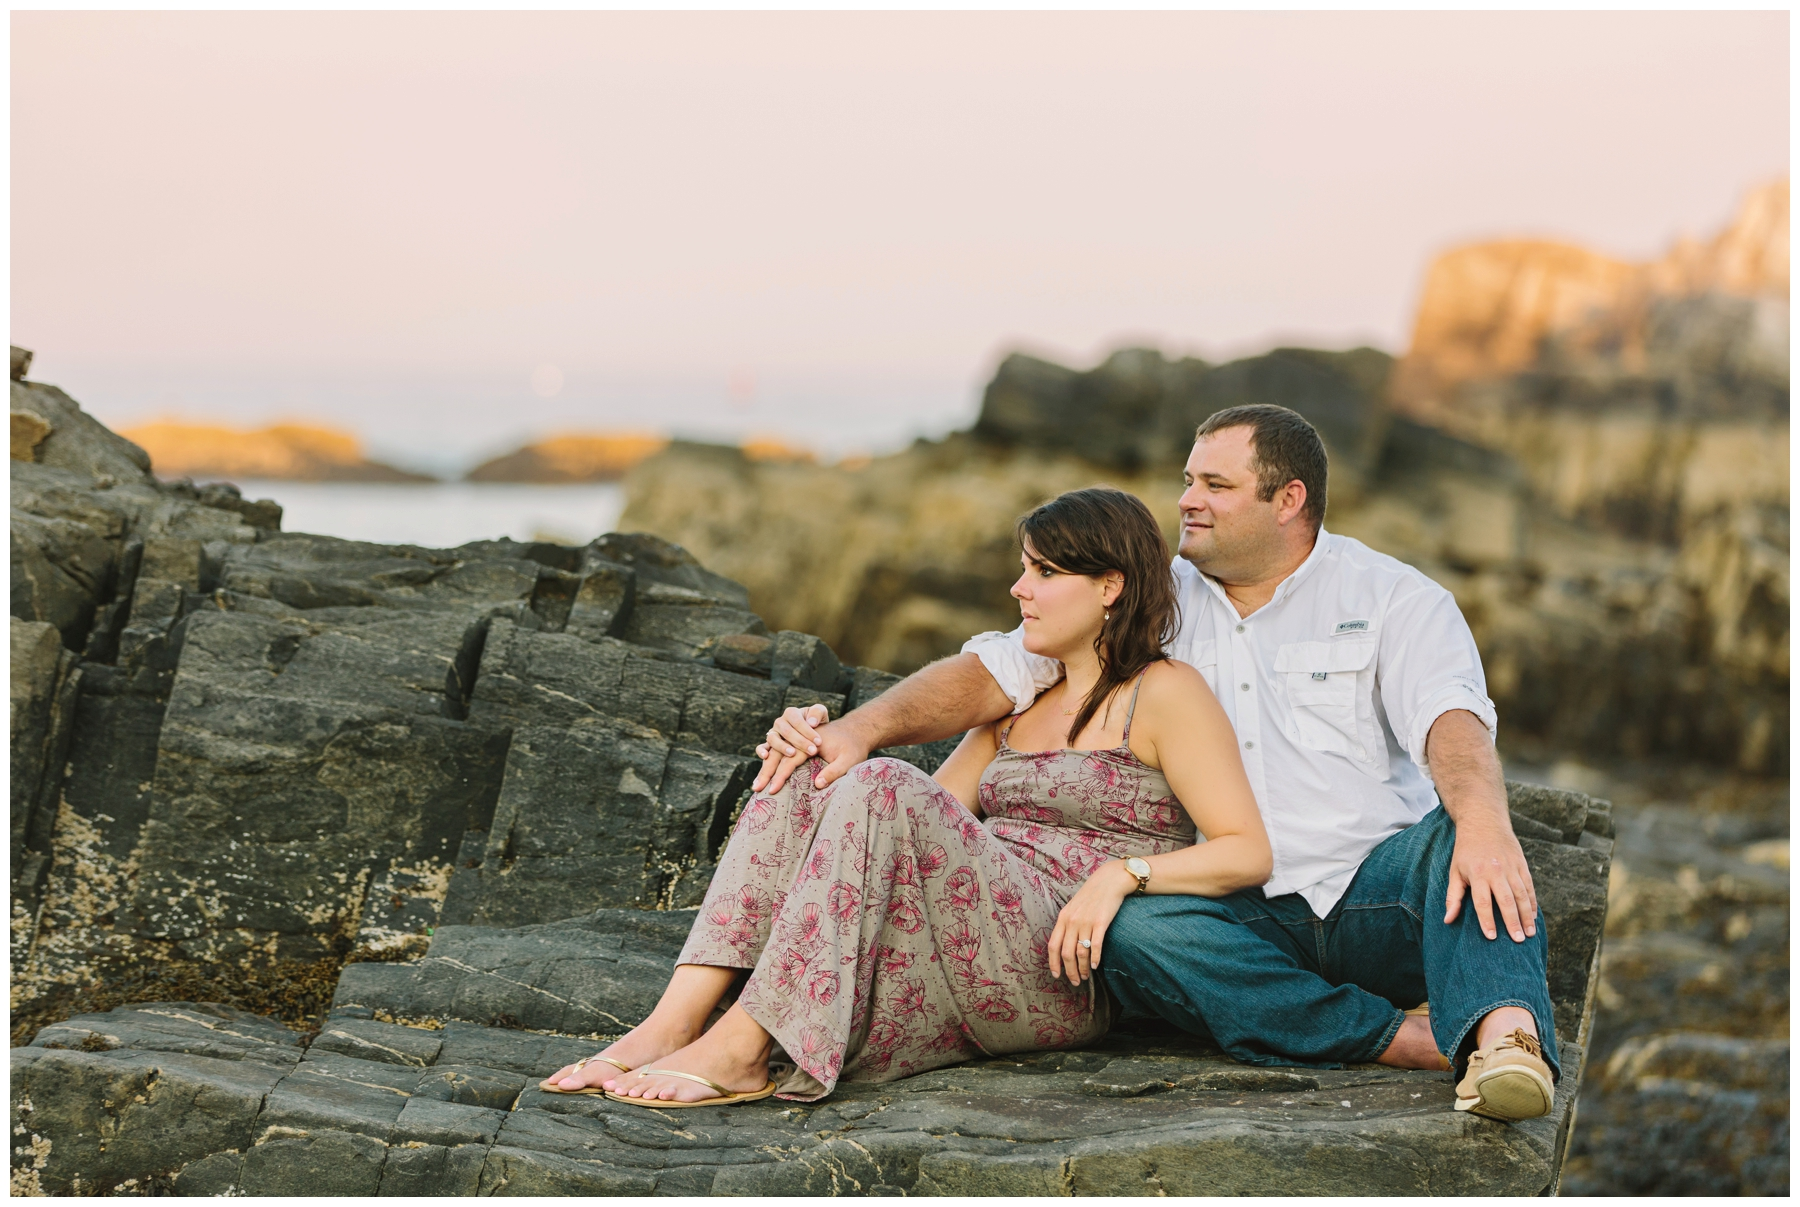 Maine_Photographer_Engagements_FortWilliams_PortlandHeadLight_lighthouse_coastal_seaside-012